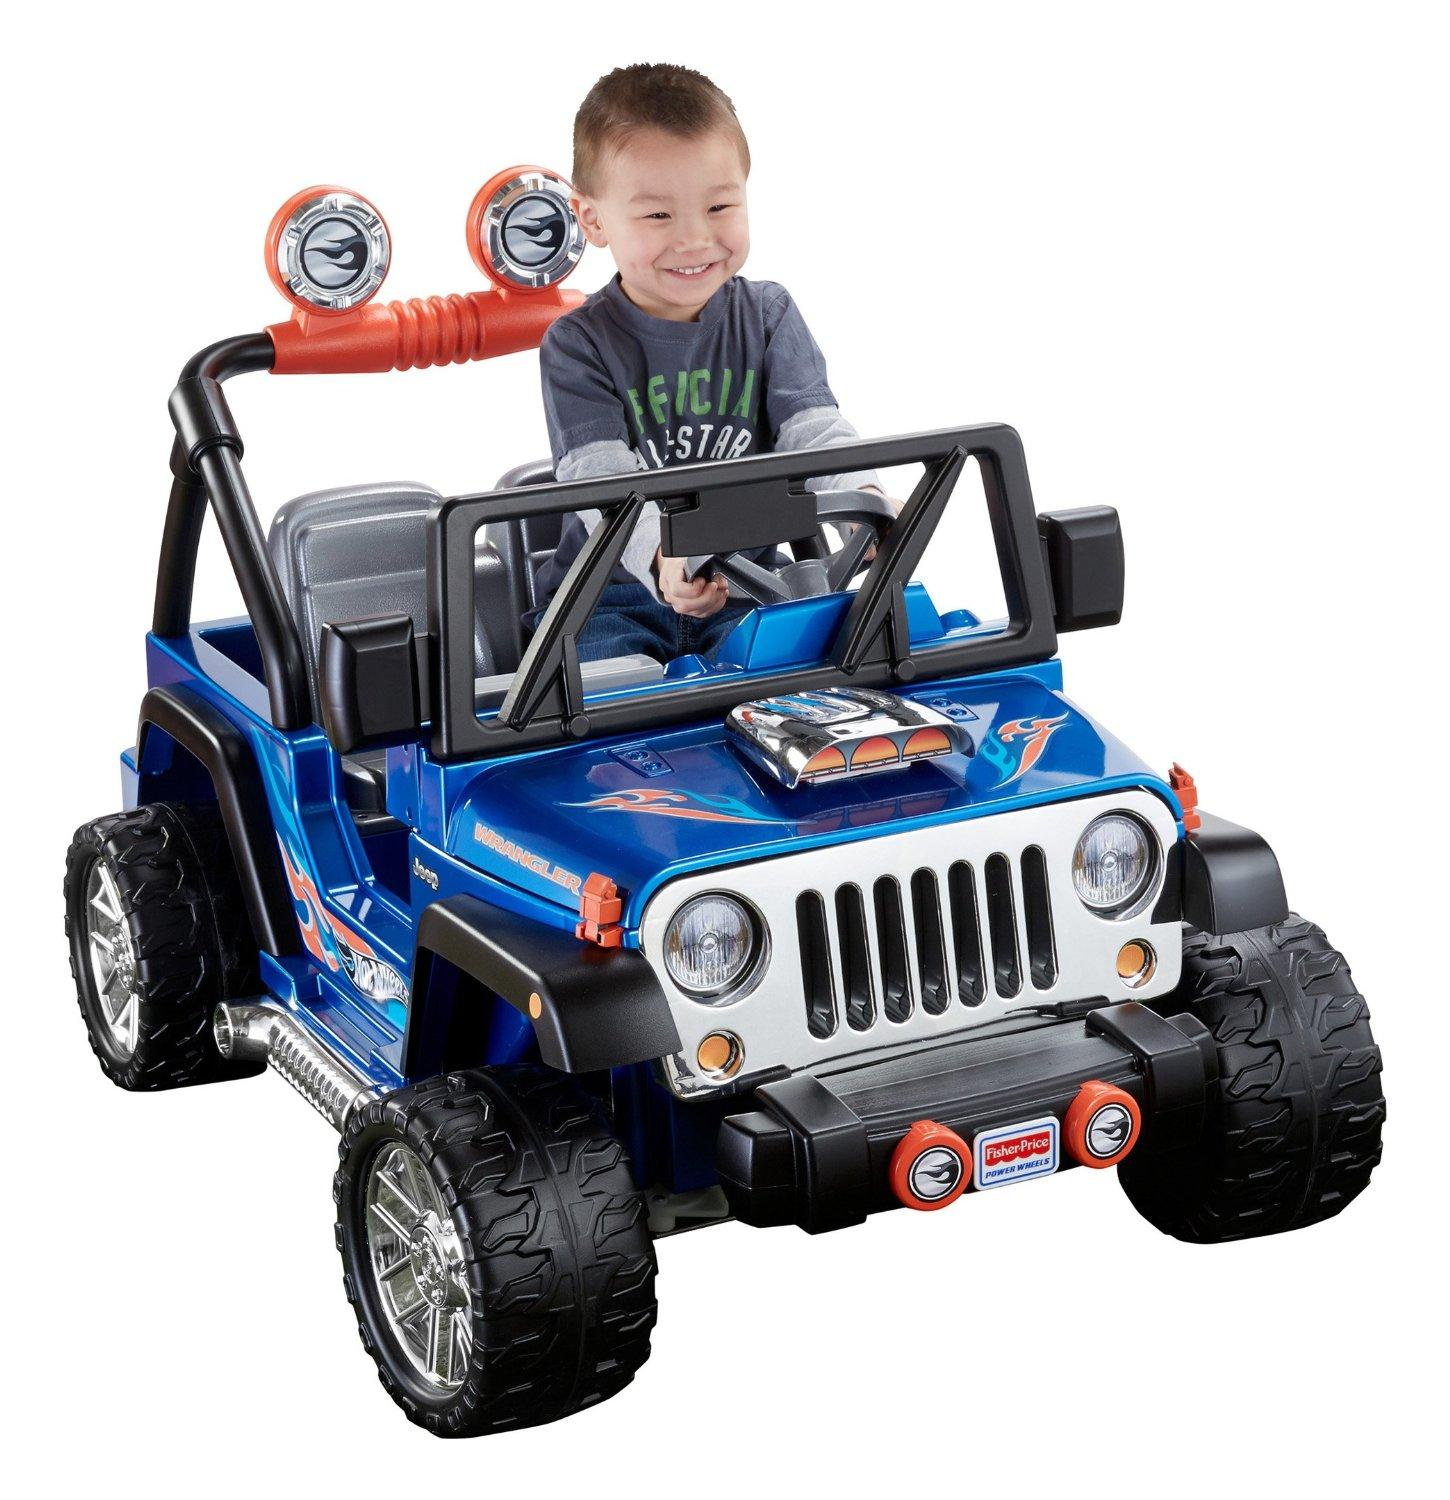 Fisher price power wheels hot wheels jeep for Hot wheels motorized jeep